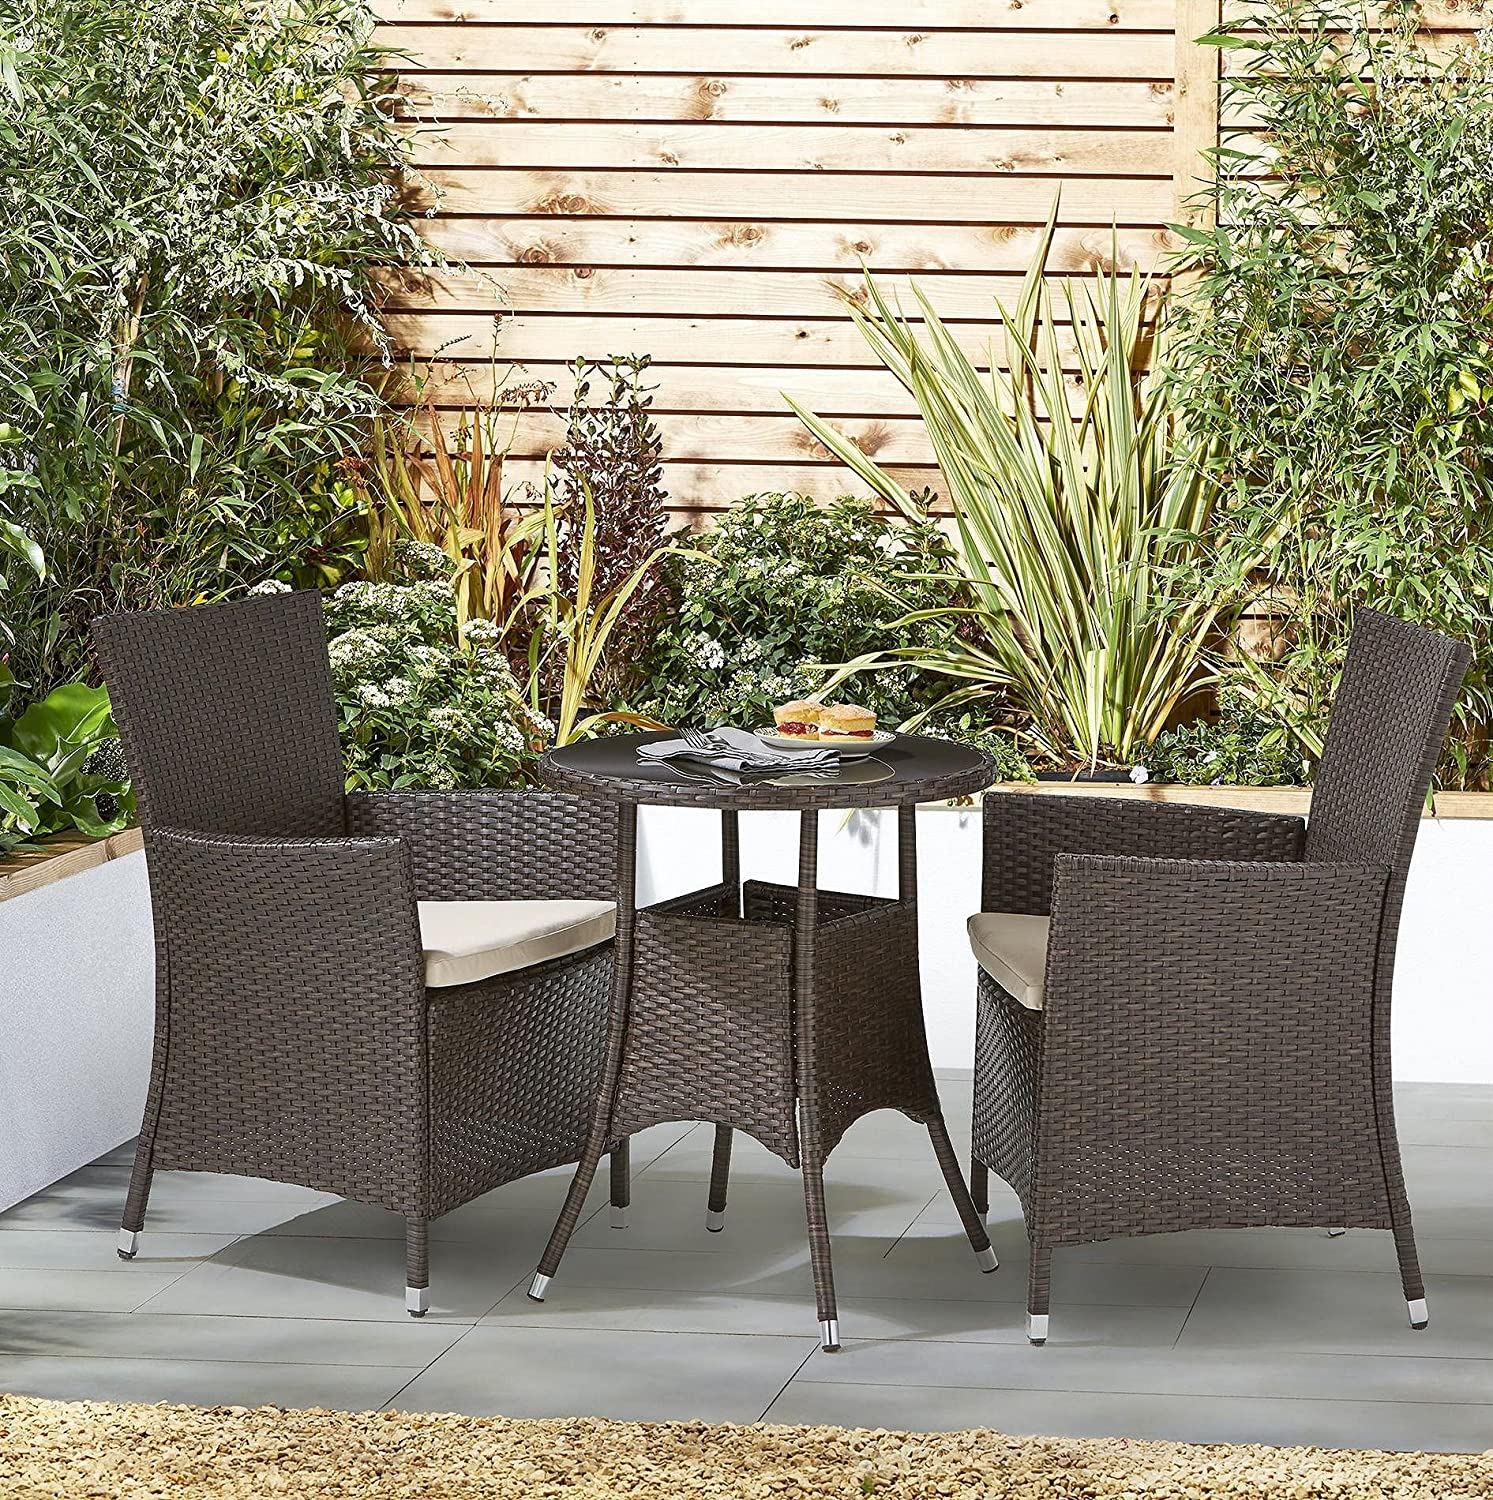 Tesco NEW Corsica Rattan 10 Piece Bistro Garden Dining Table & 10